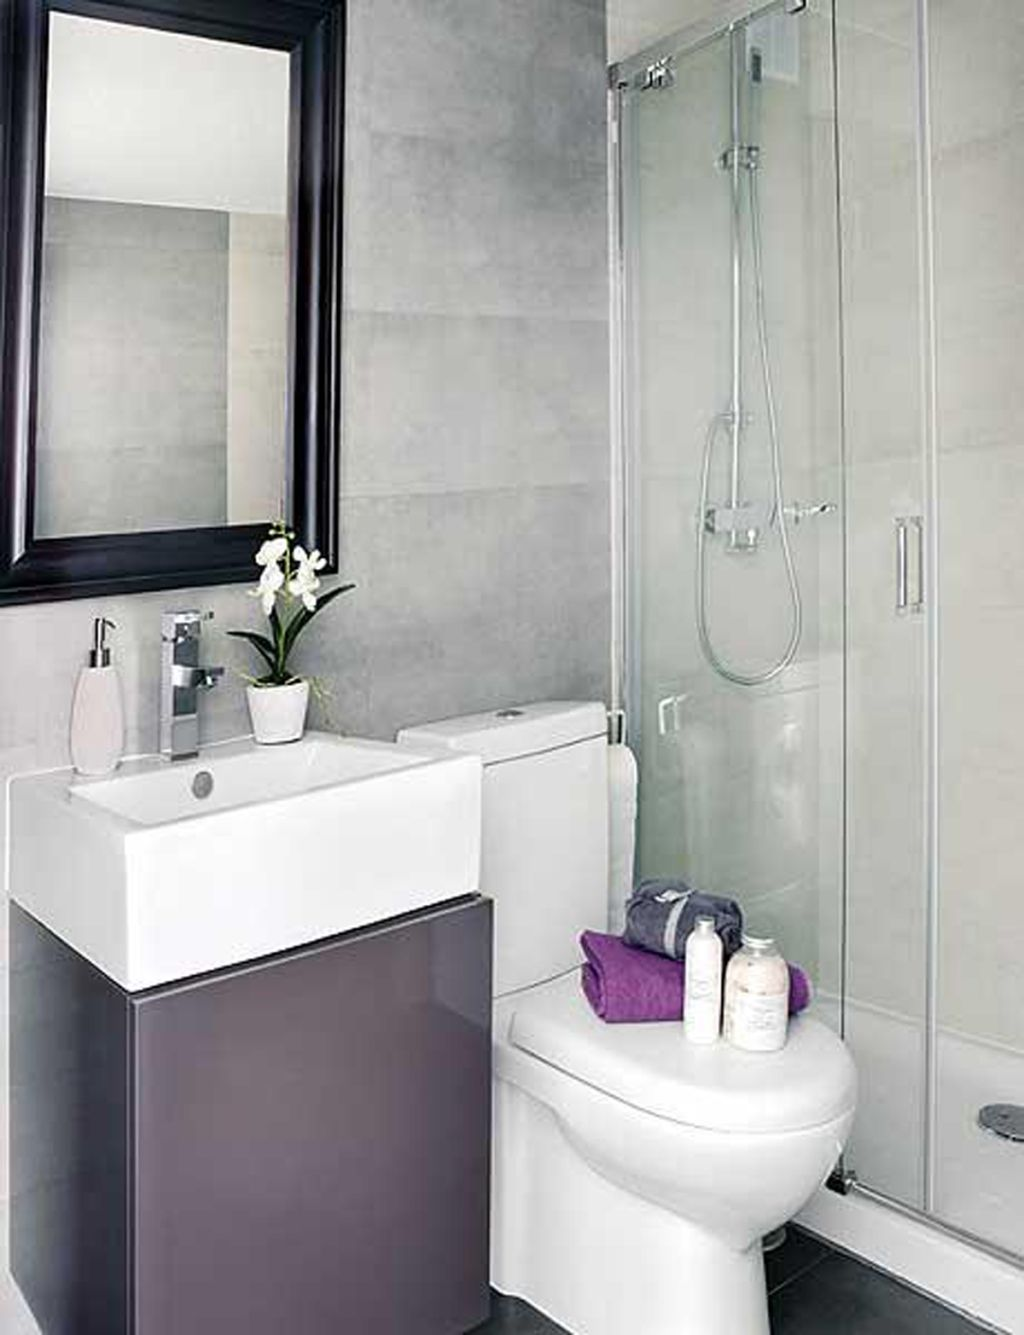 Small bathroom design in malaysia httpwww houzz club